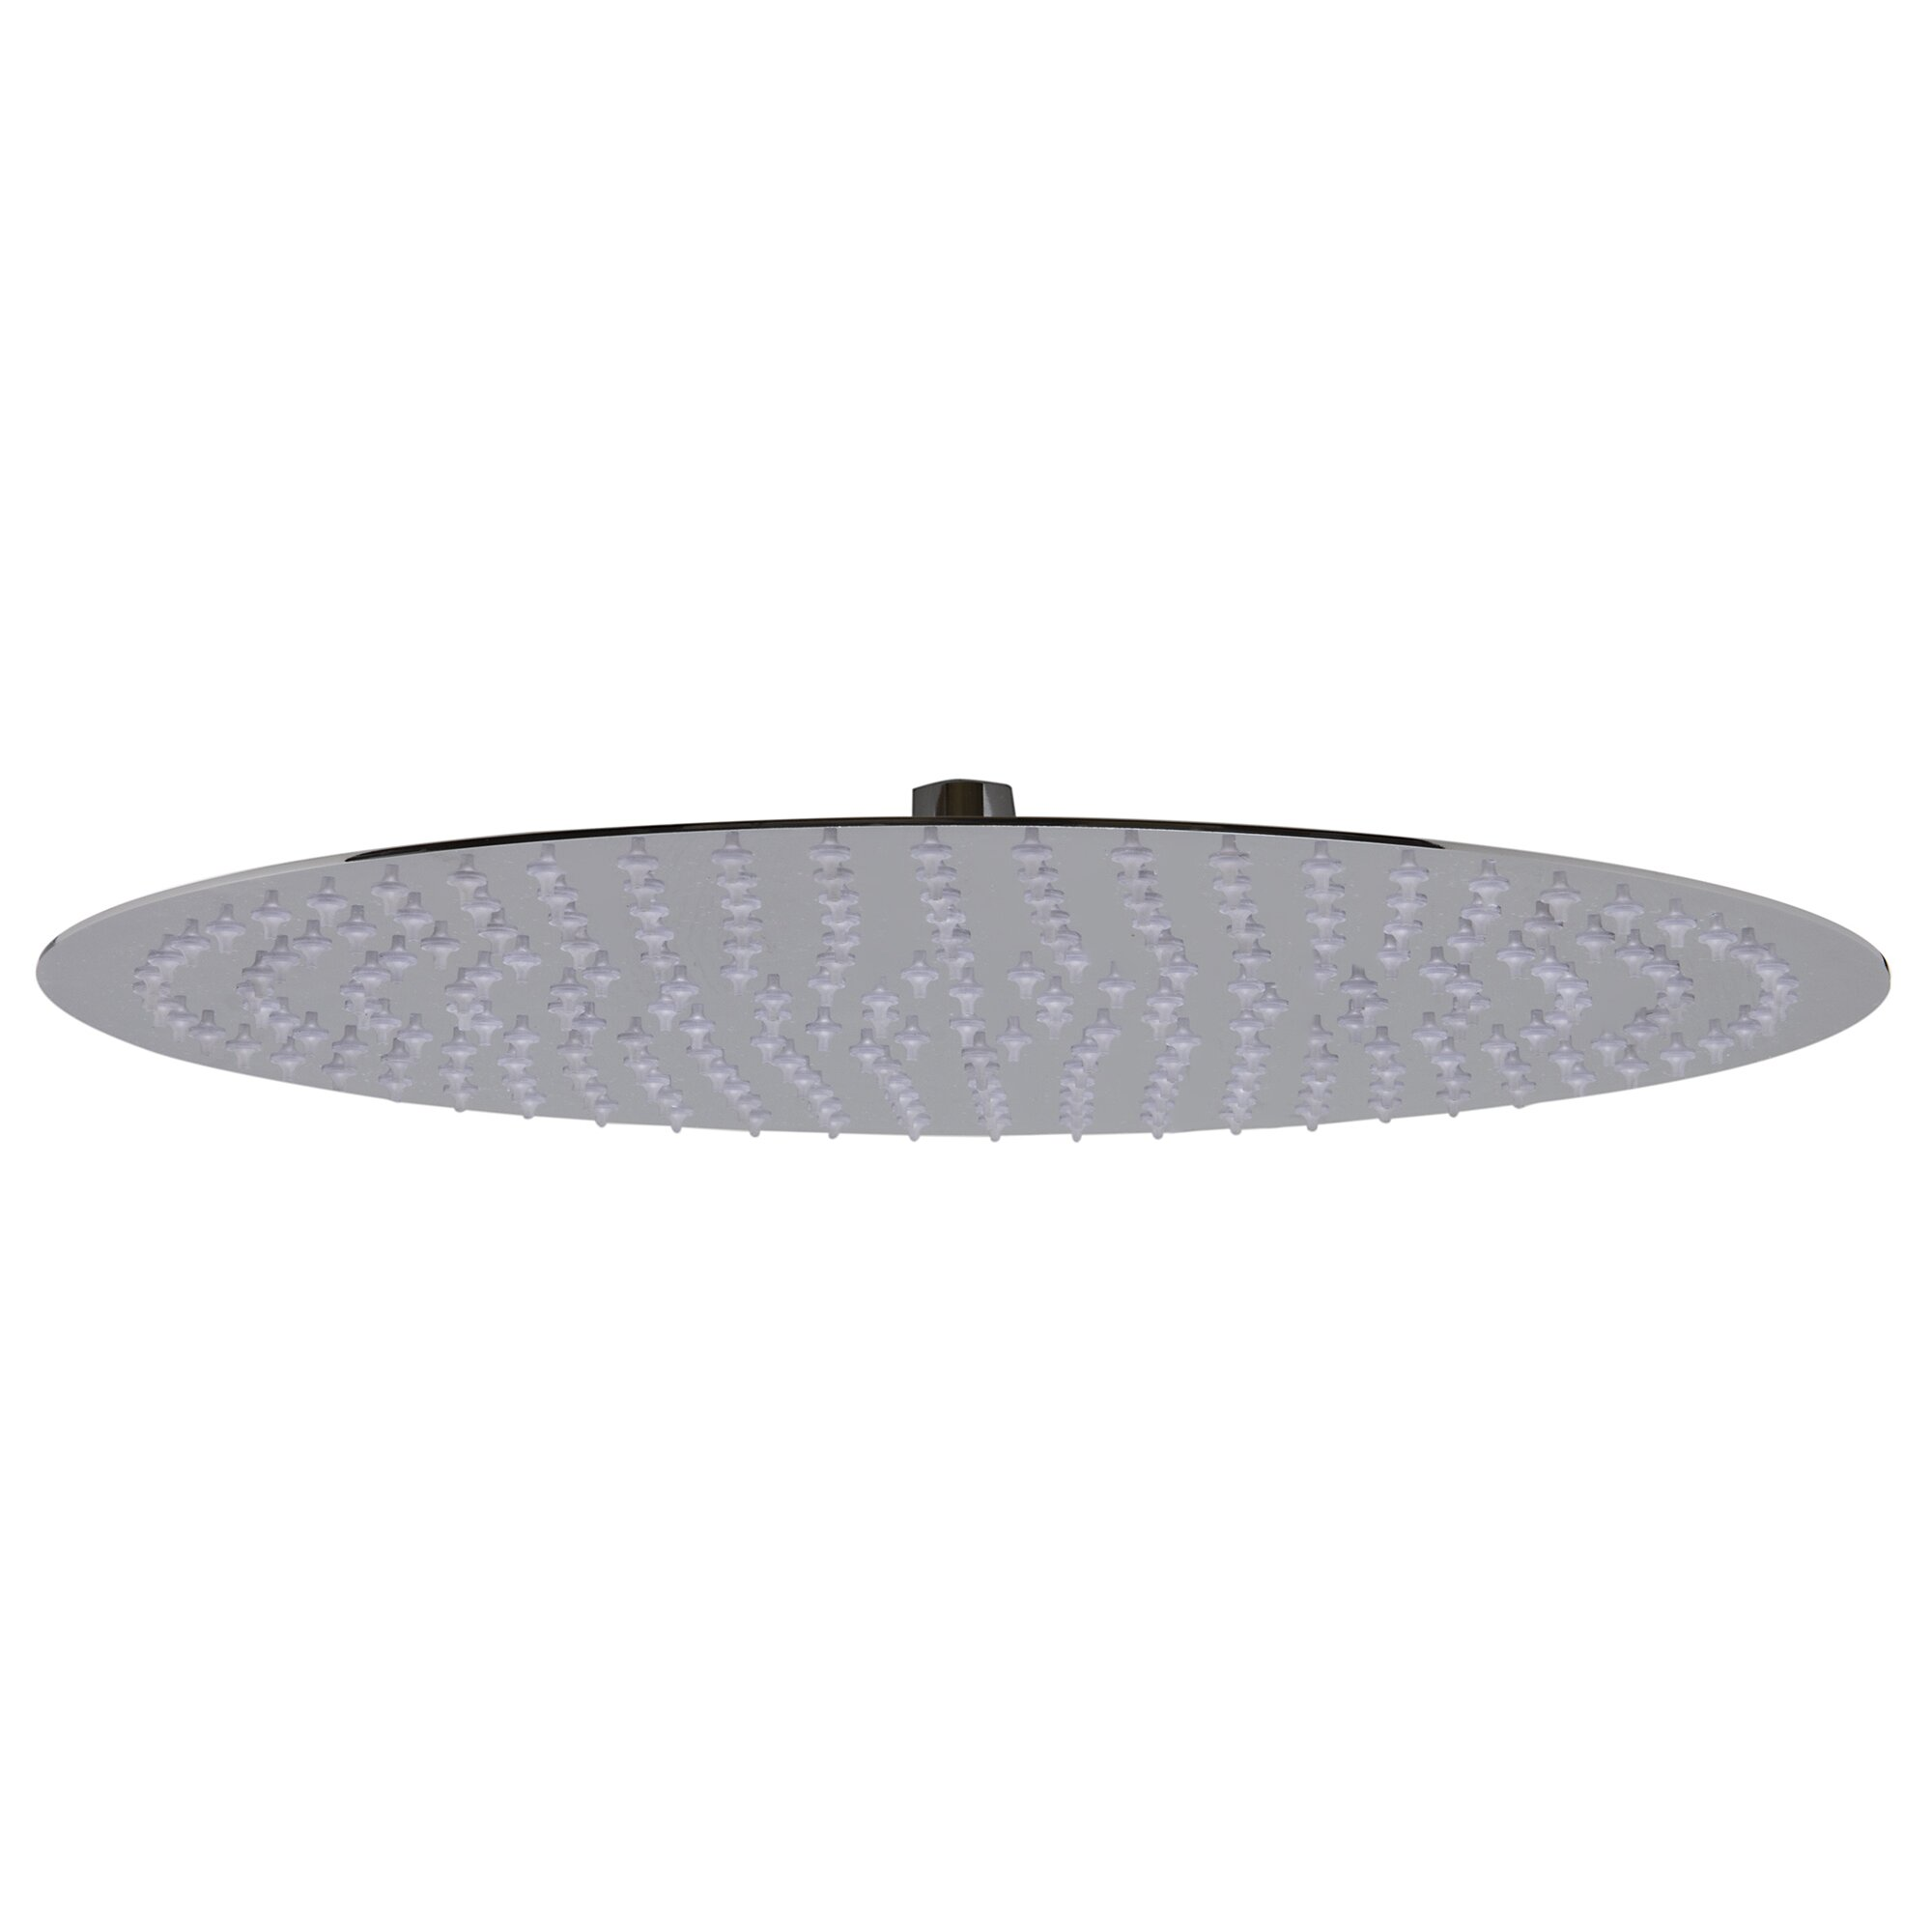 Alfi Brand  Round Ultra Thin Round Rain Shower Head  Reviews - Rain shower head with extension arm